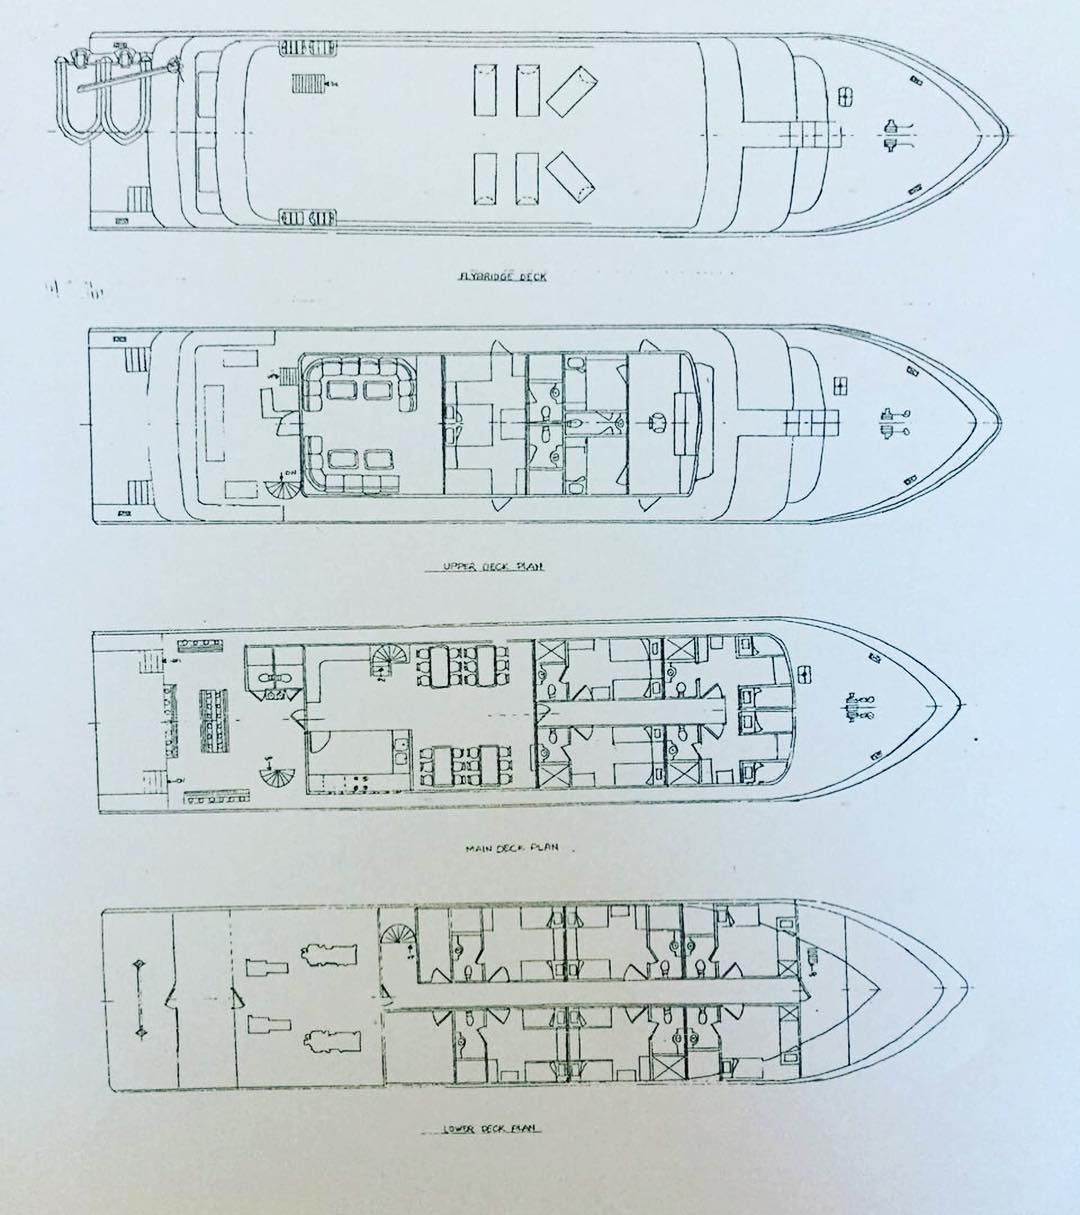 The Infiniti Is A 39meter Liveaboard Superyacht With Four Decks Lounge Dining Room Sundeck Kitchen Dive